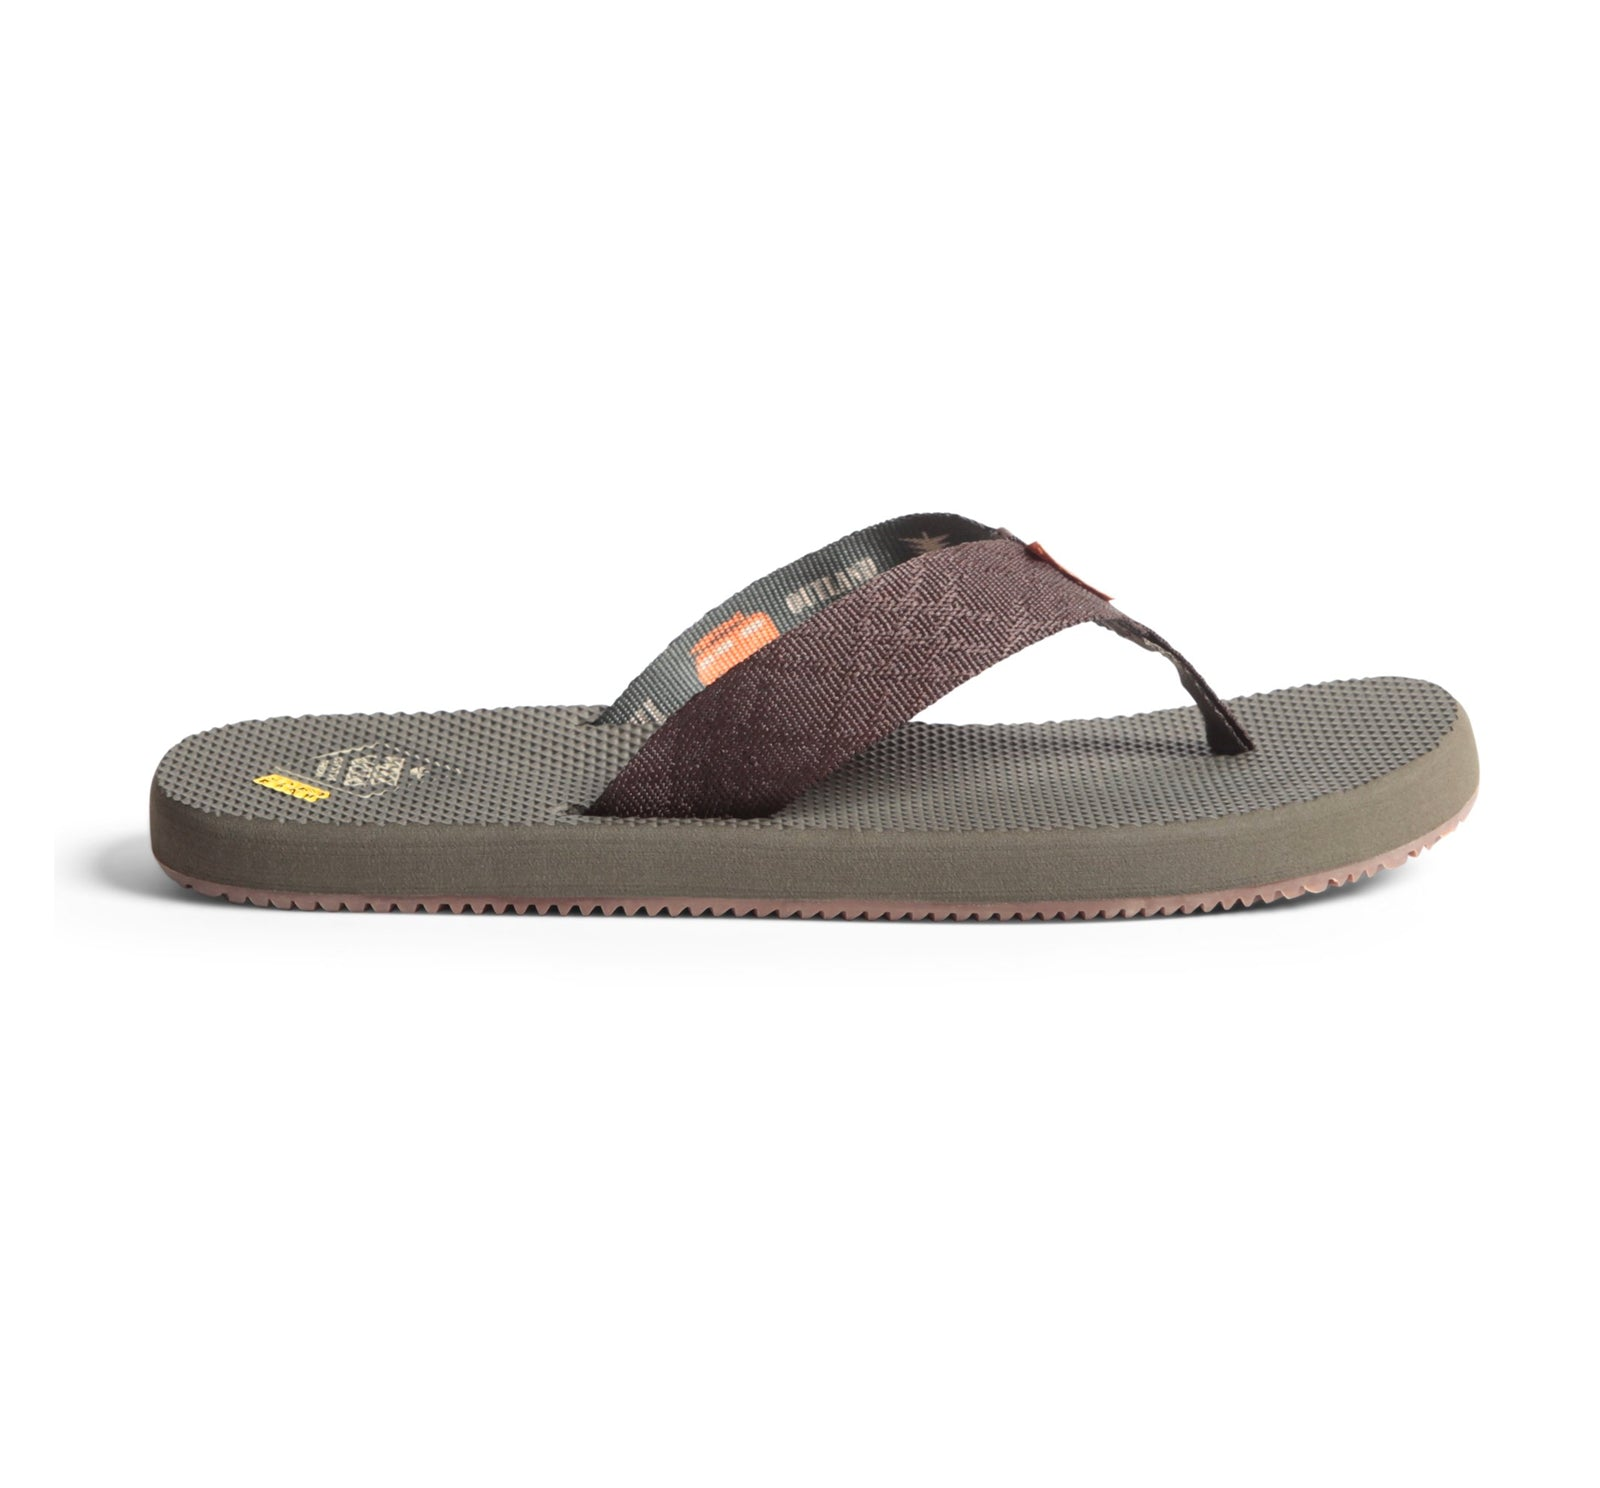 Freewaters Supreem Men's Sandals